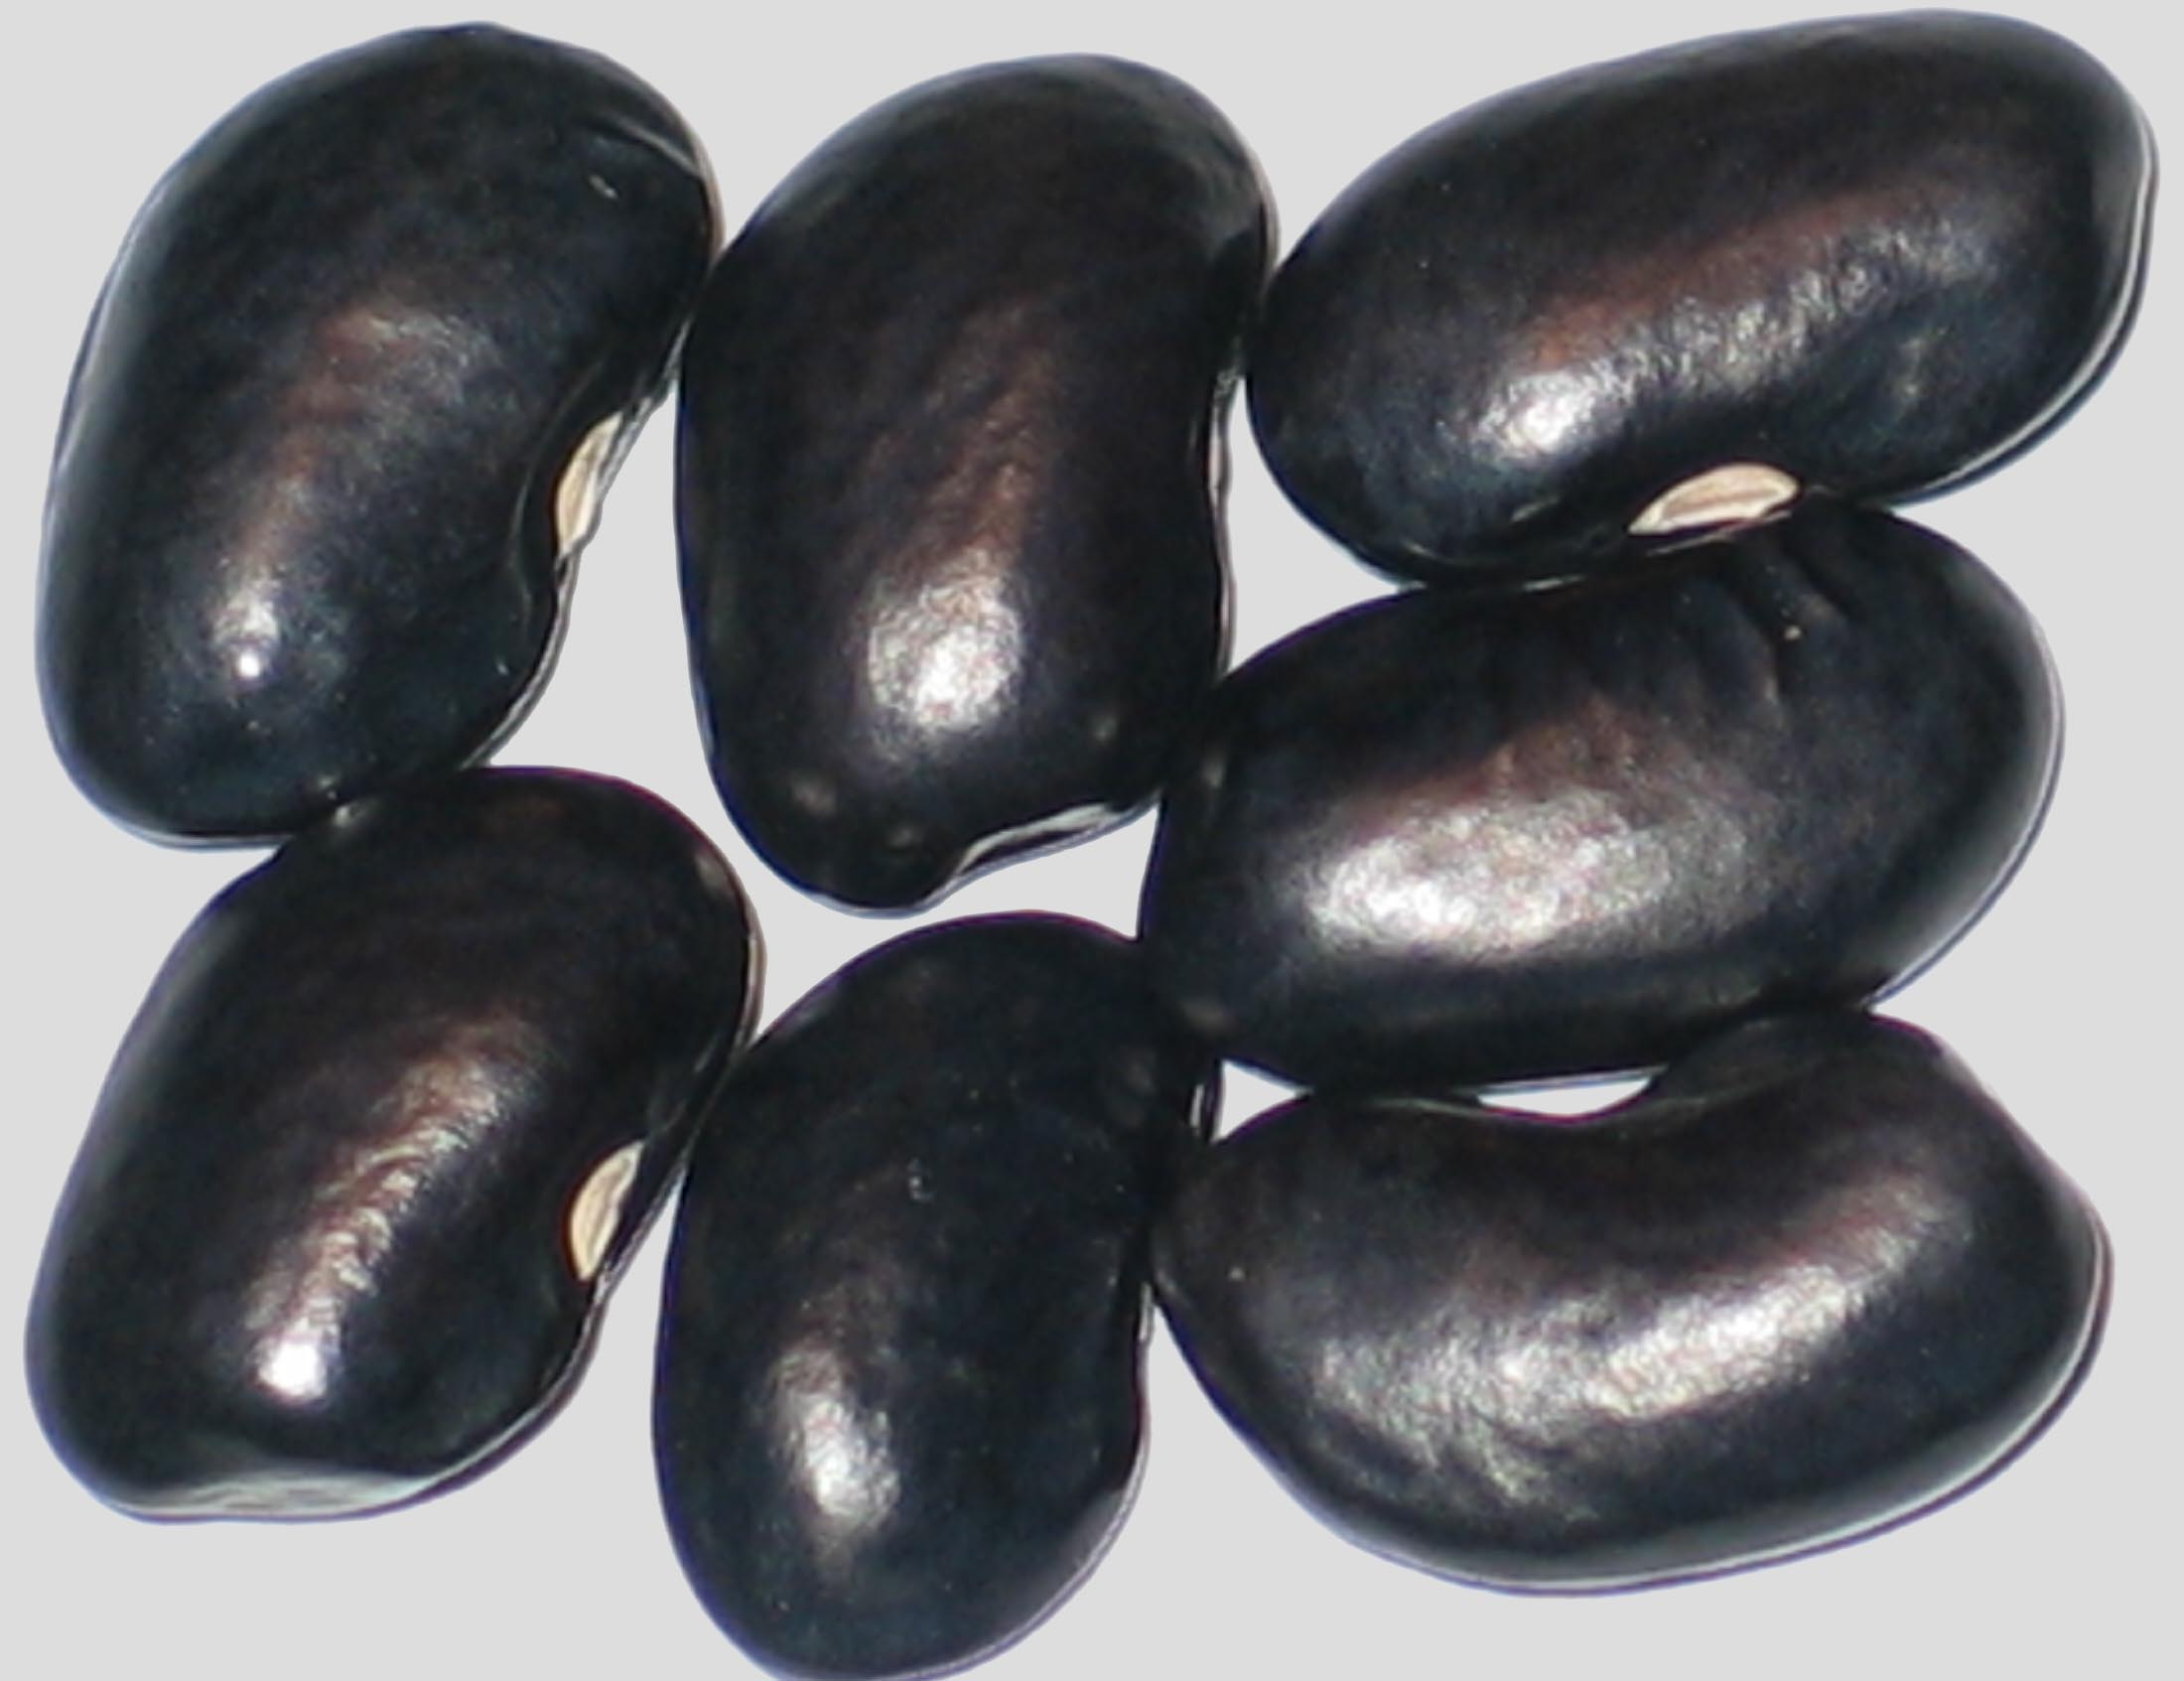 image of Chase River beans